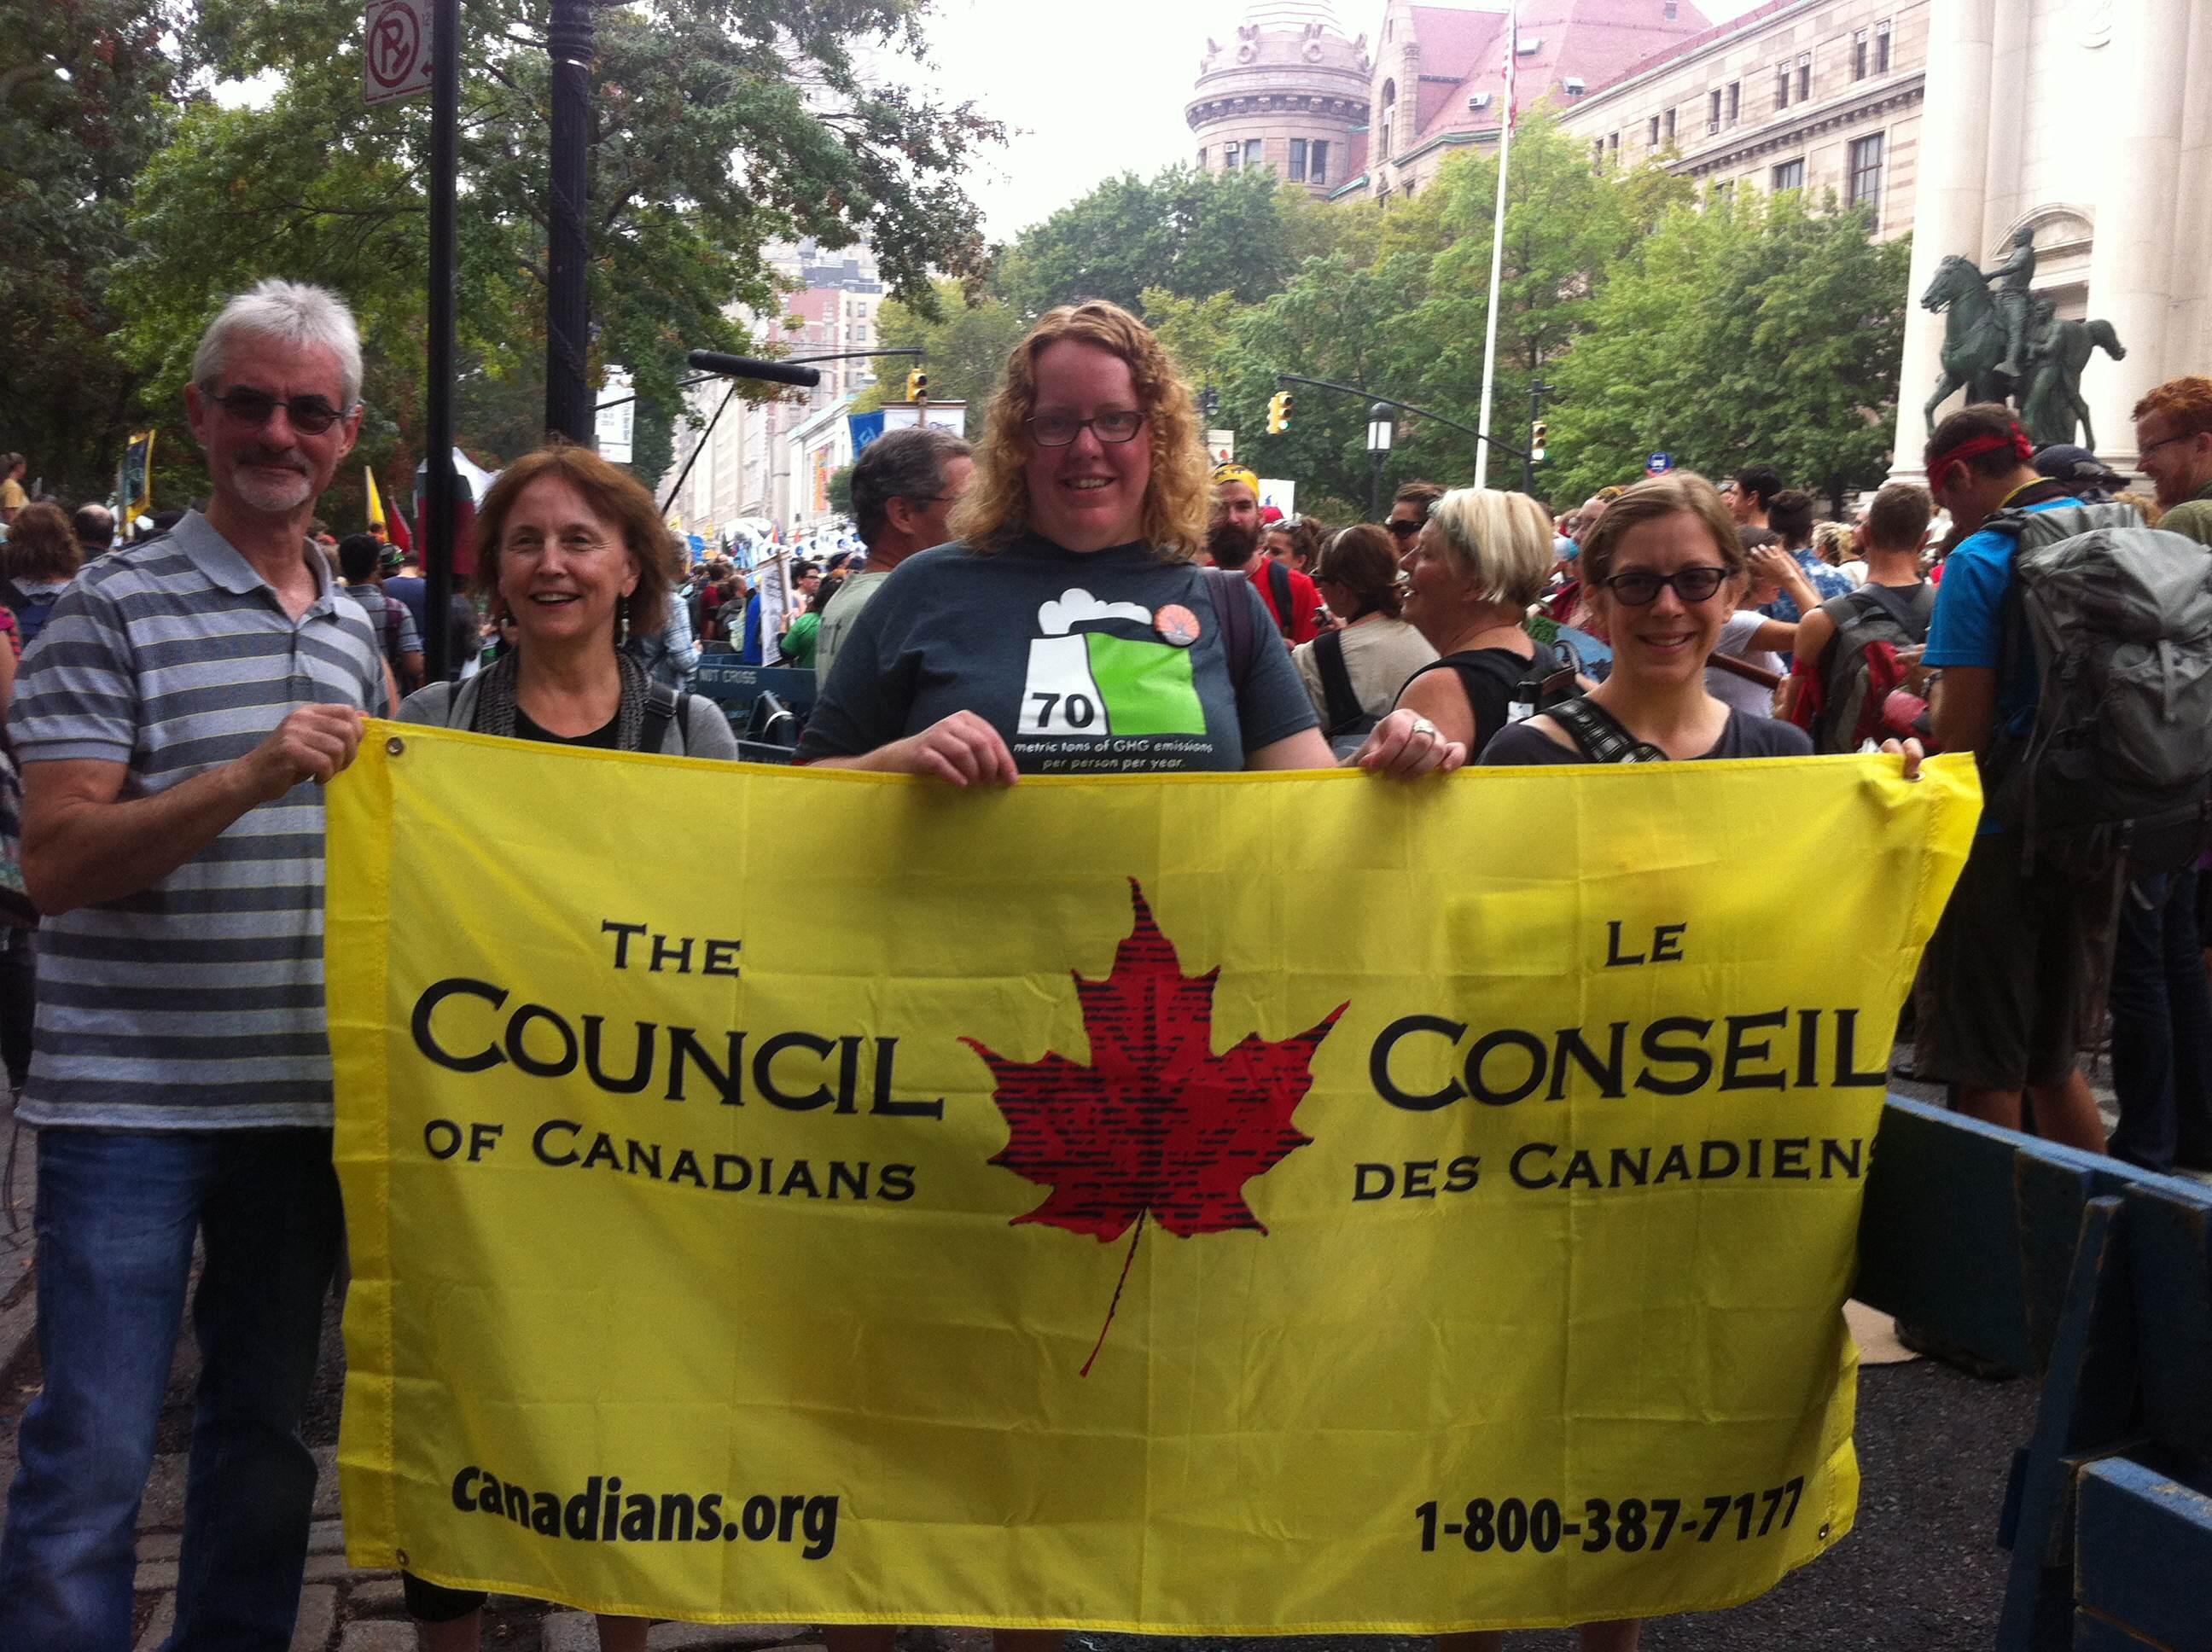 tracey_mitchell_at_peoples_climate_march_in_nyc